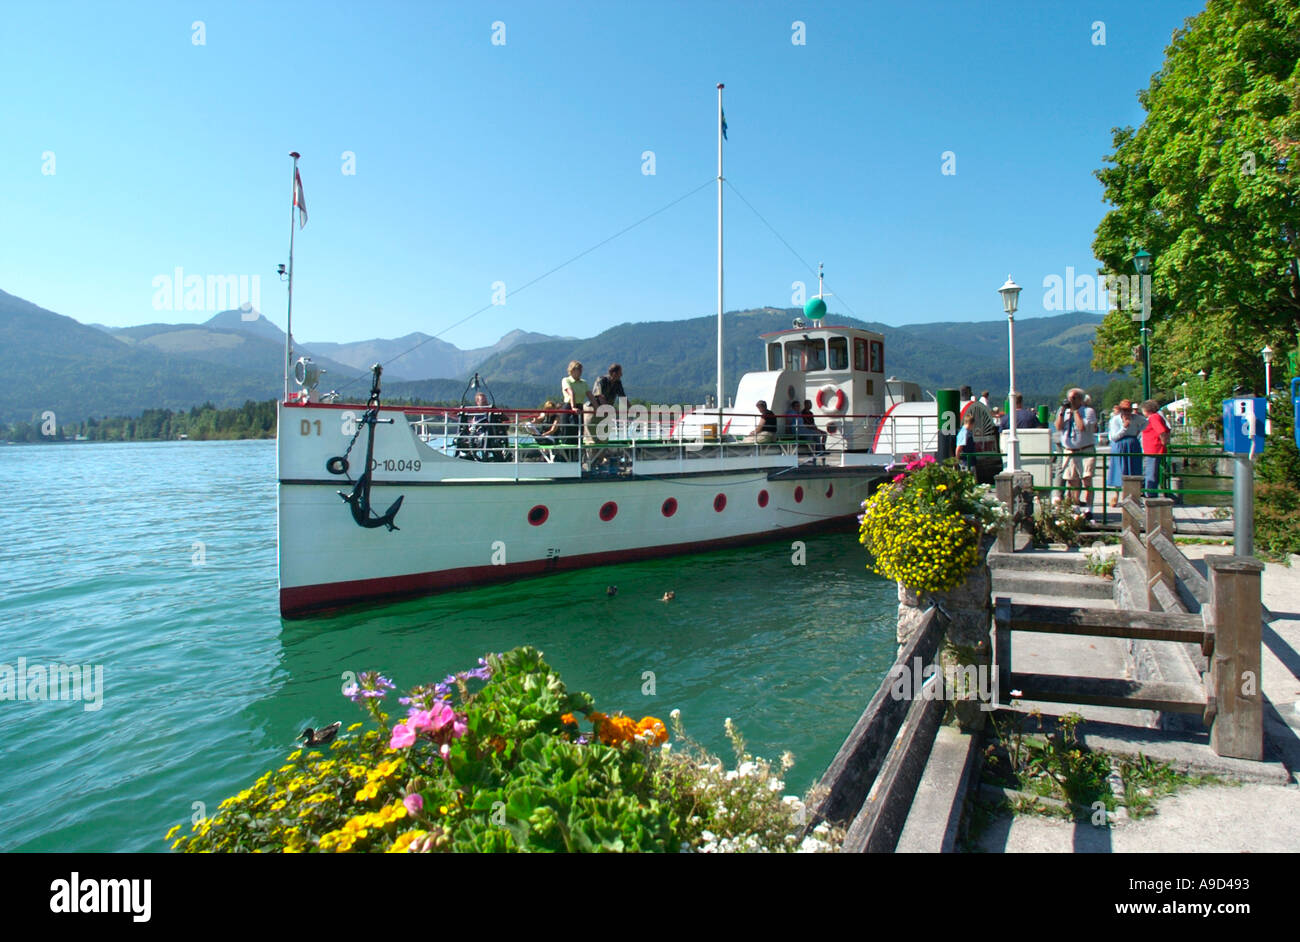 Ferry at the lakeside in St Wolfgang, Lake Wolfgang, Salzkammergut, Austria - Stock Image